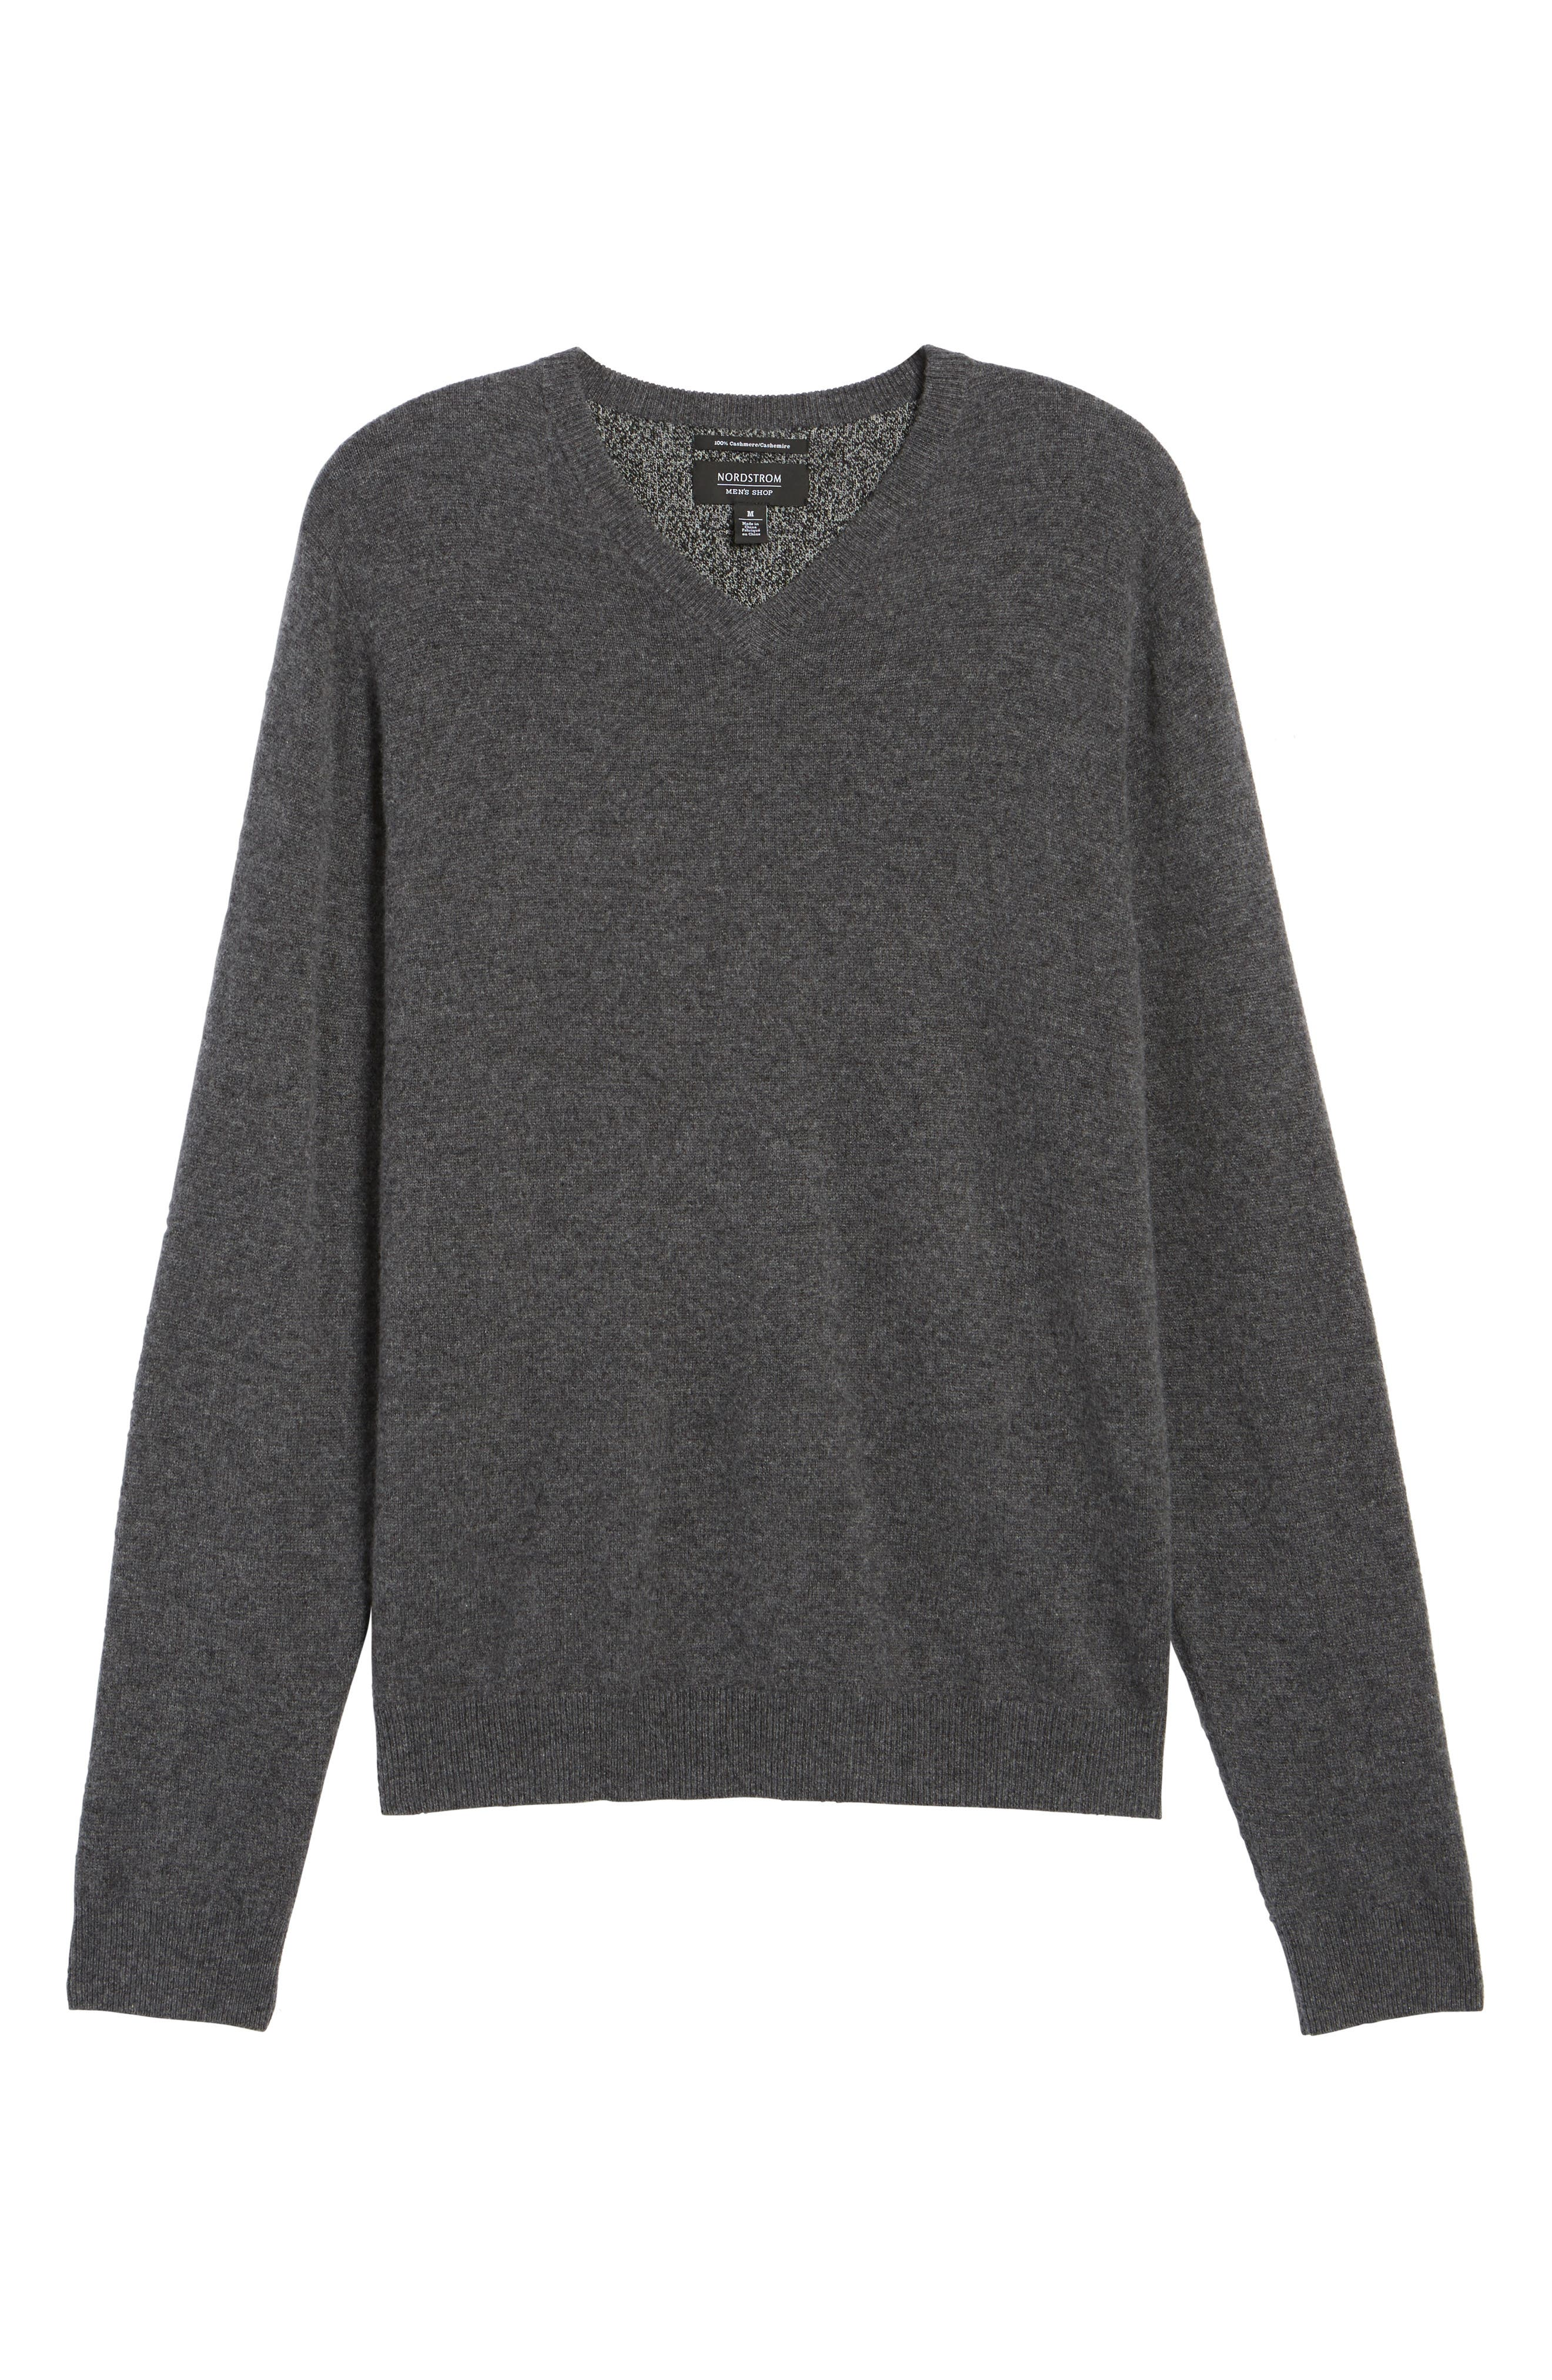 Cashmere V-Neck Sweater,                             Alternate thumbnail 6, color,                             GREY SHADE